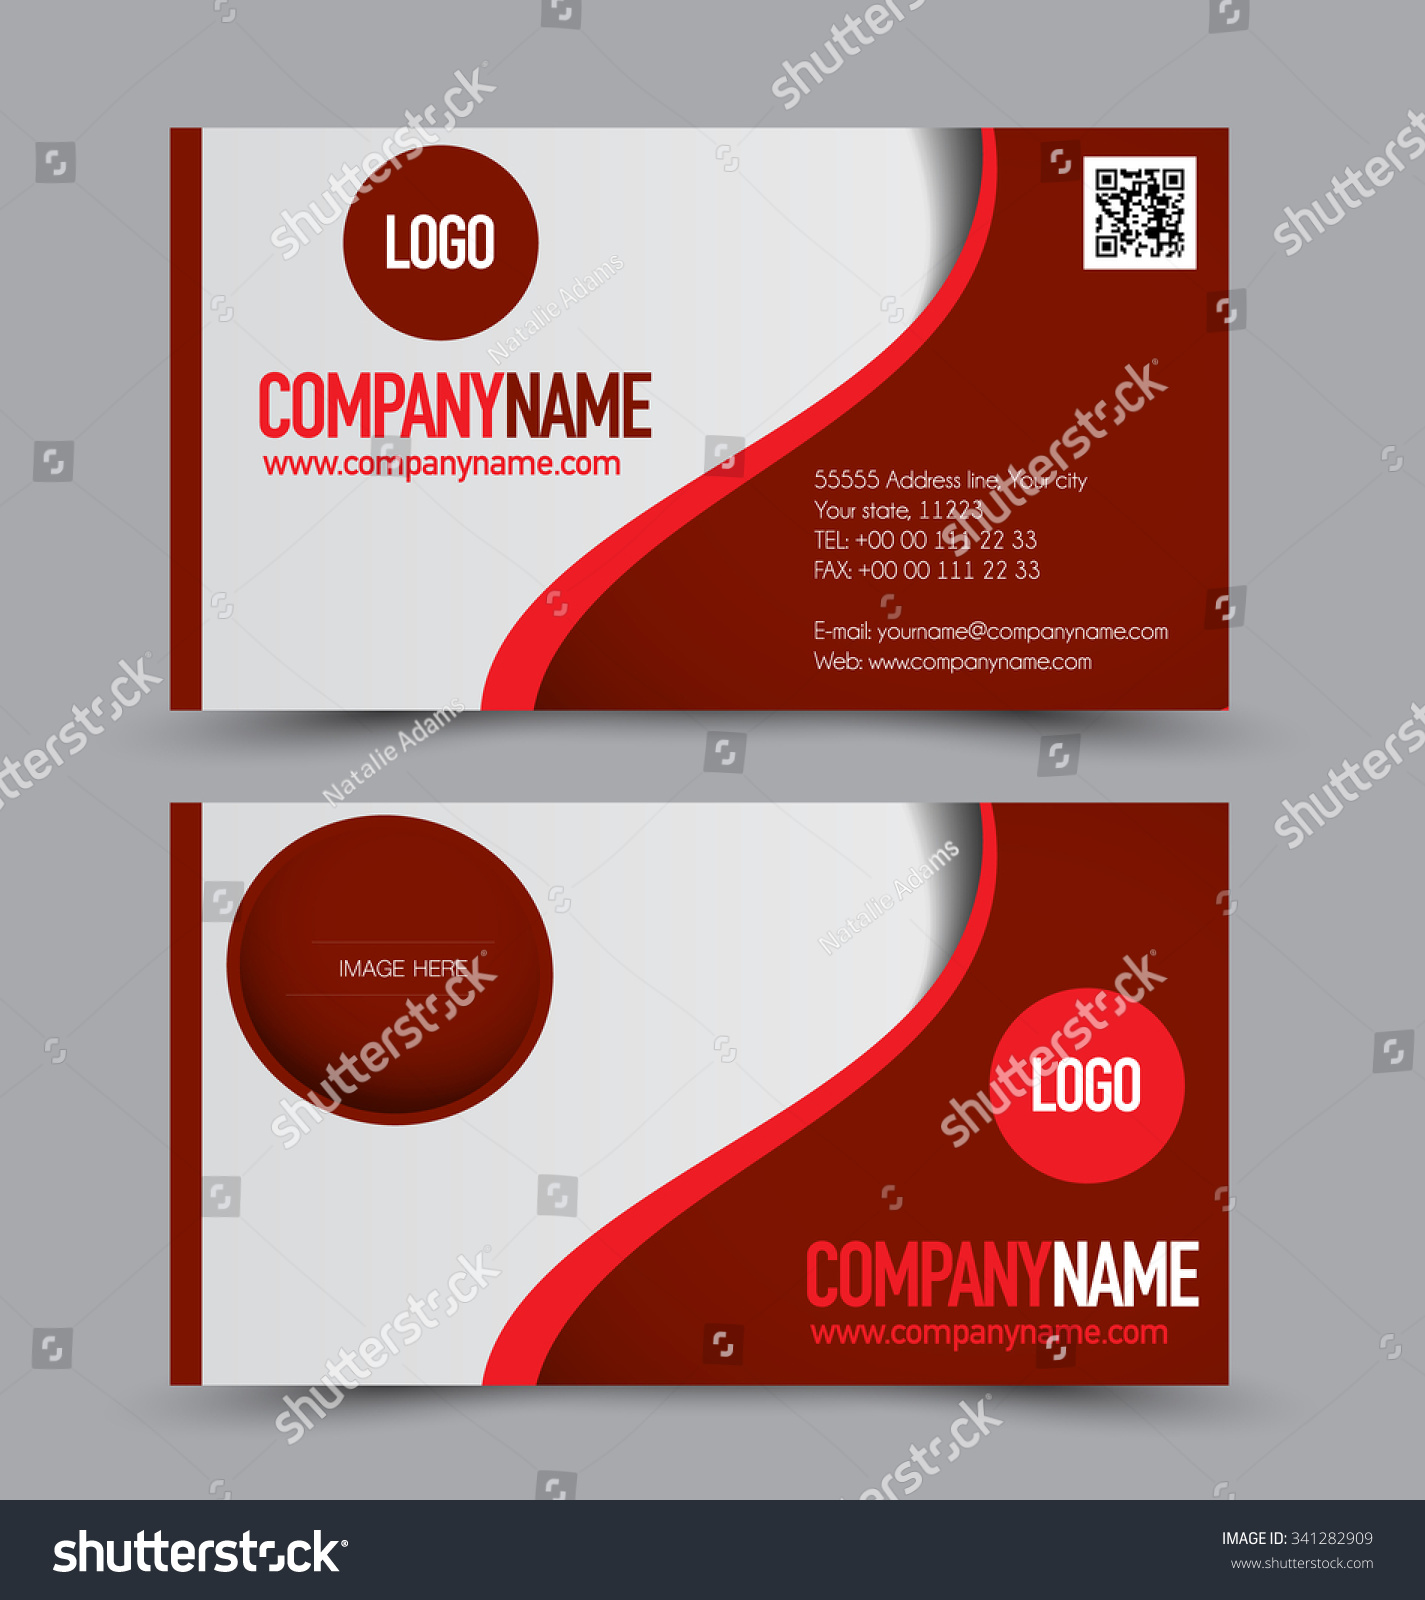 Business cards templates for businesscards mx oukasfo tagsbusinesscards mx business cards maker design and printbusiness cards templates for businesscards mxsoftware businesscards mx is an advanced business reheart Choice Image